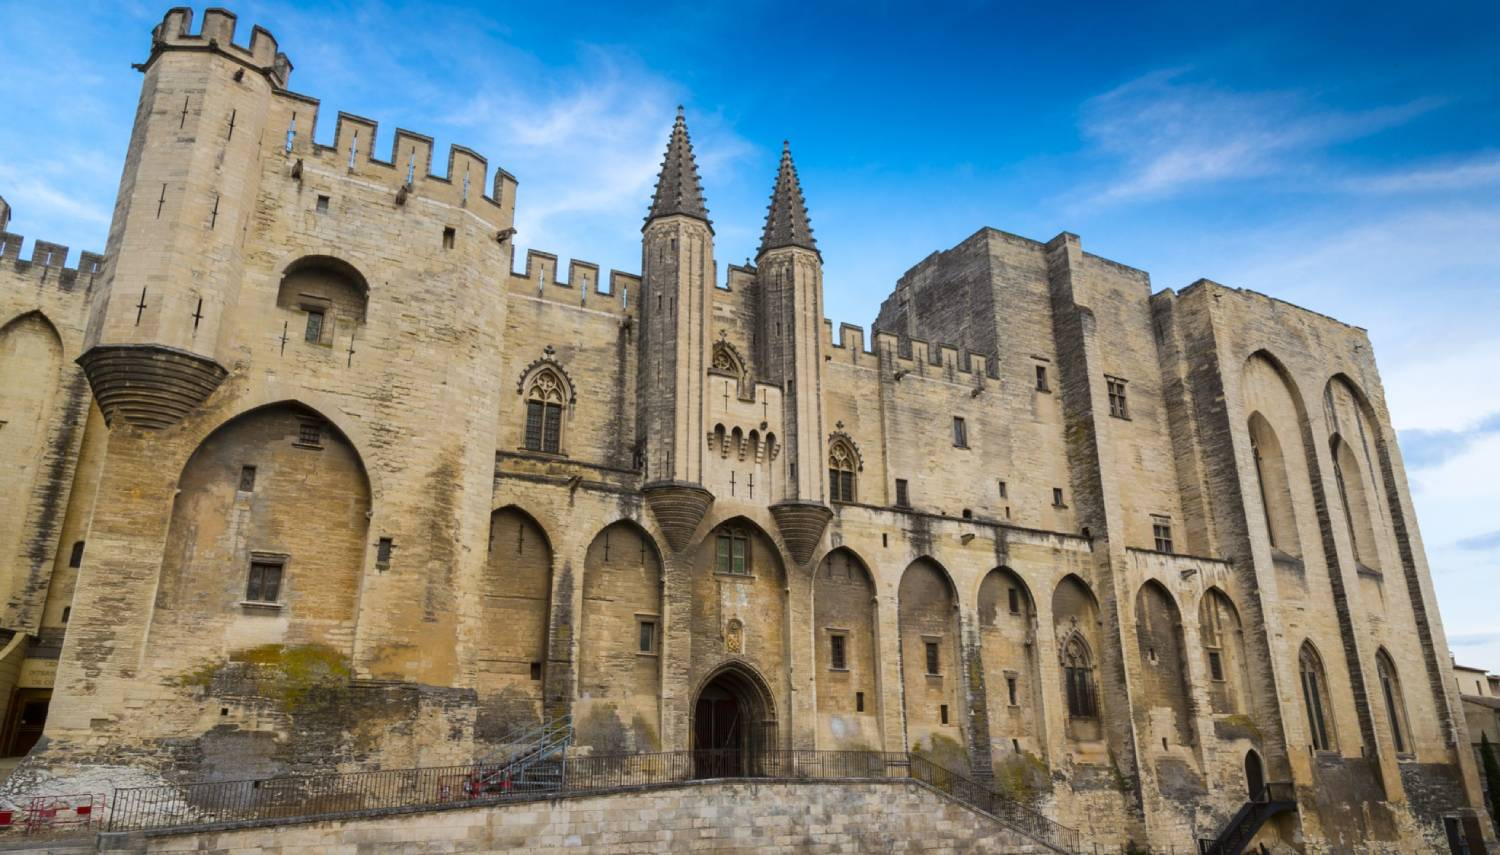 Palace of the Popes (Palais des Papes) - Things To Do In Avignon